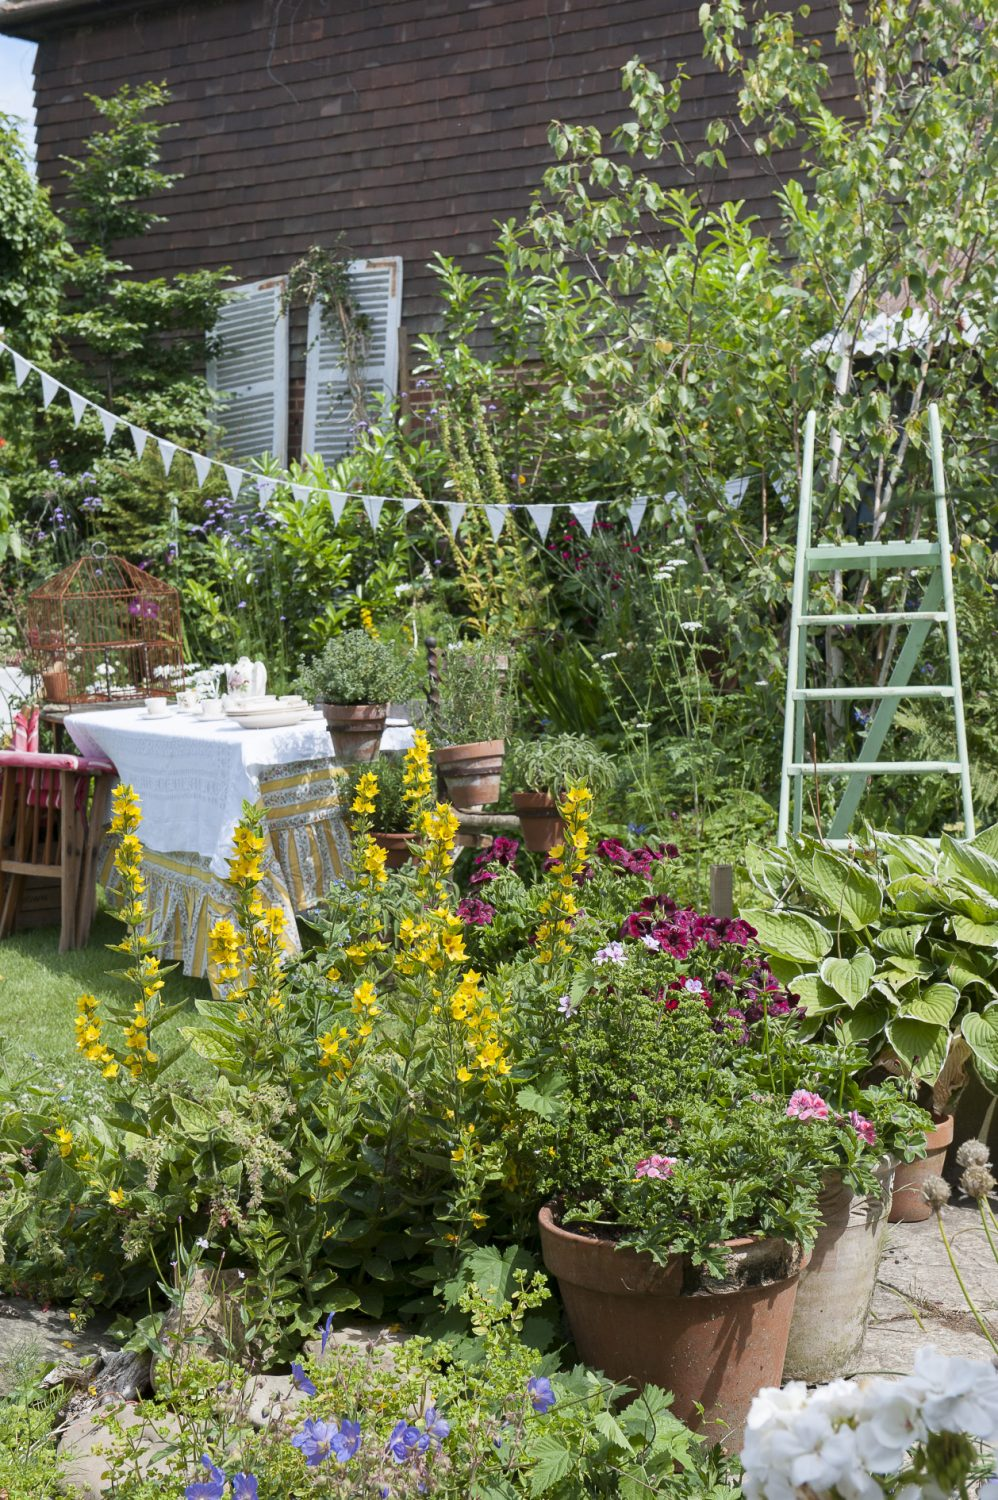 Pippa's eye-catching displays extend into the garden which was once a huge tangle of ivy and foliage. It's now home to vibrant flower beds and swathes of bunting